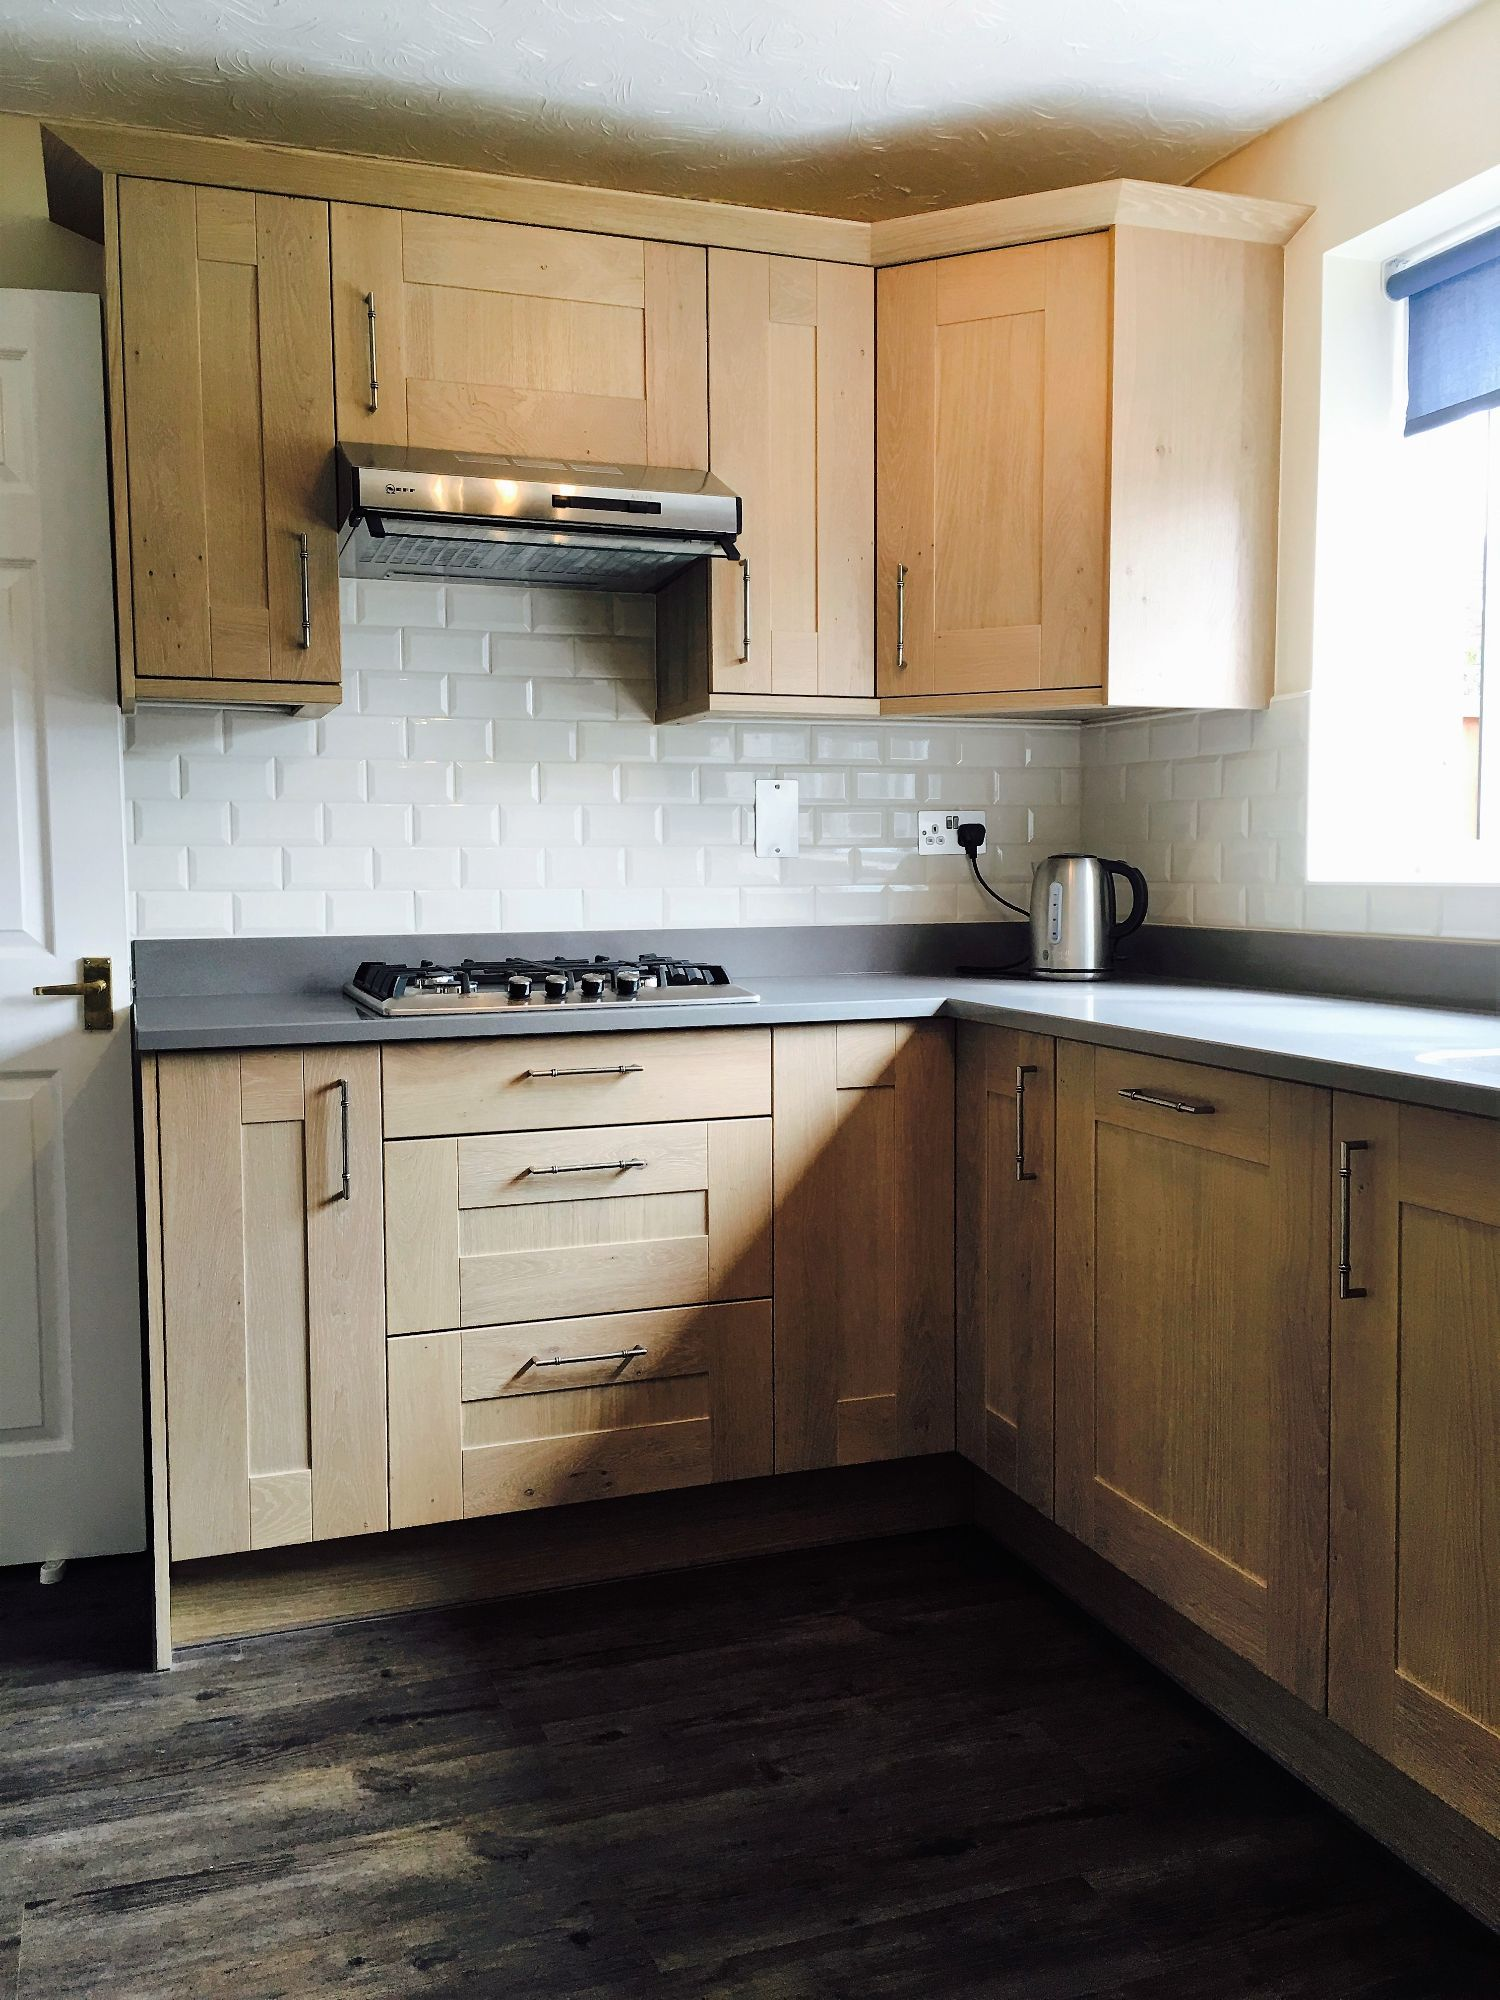 oak style kitchen white metro tiles grey laminate worktop fitter derby